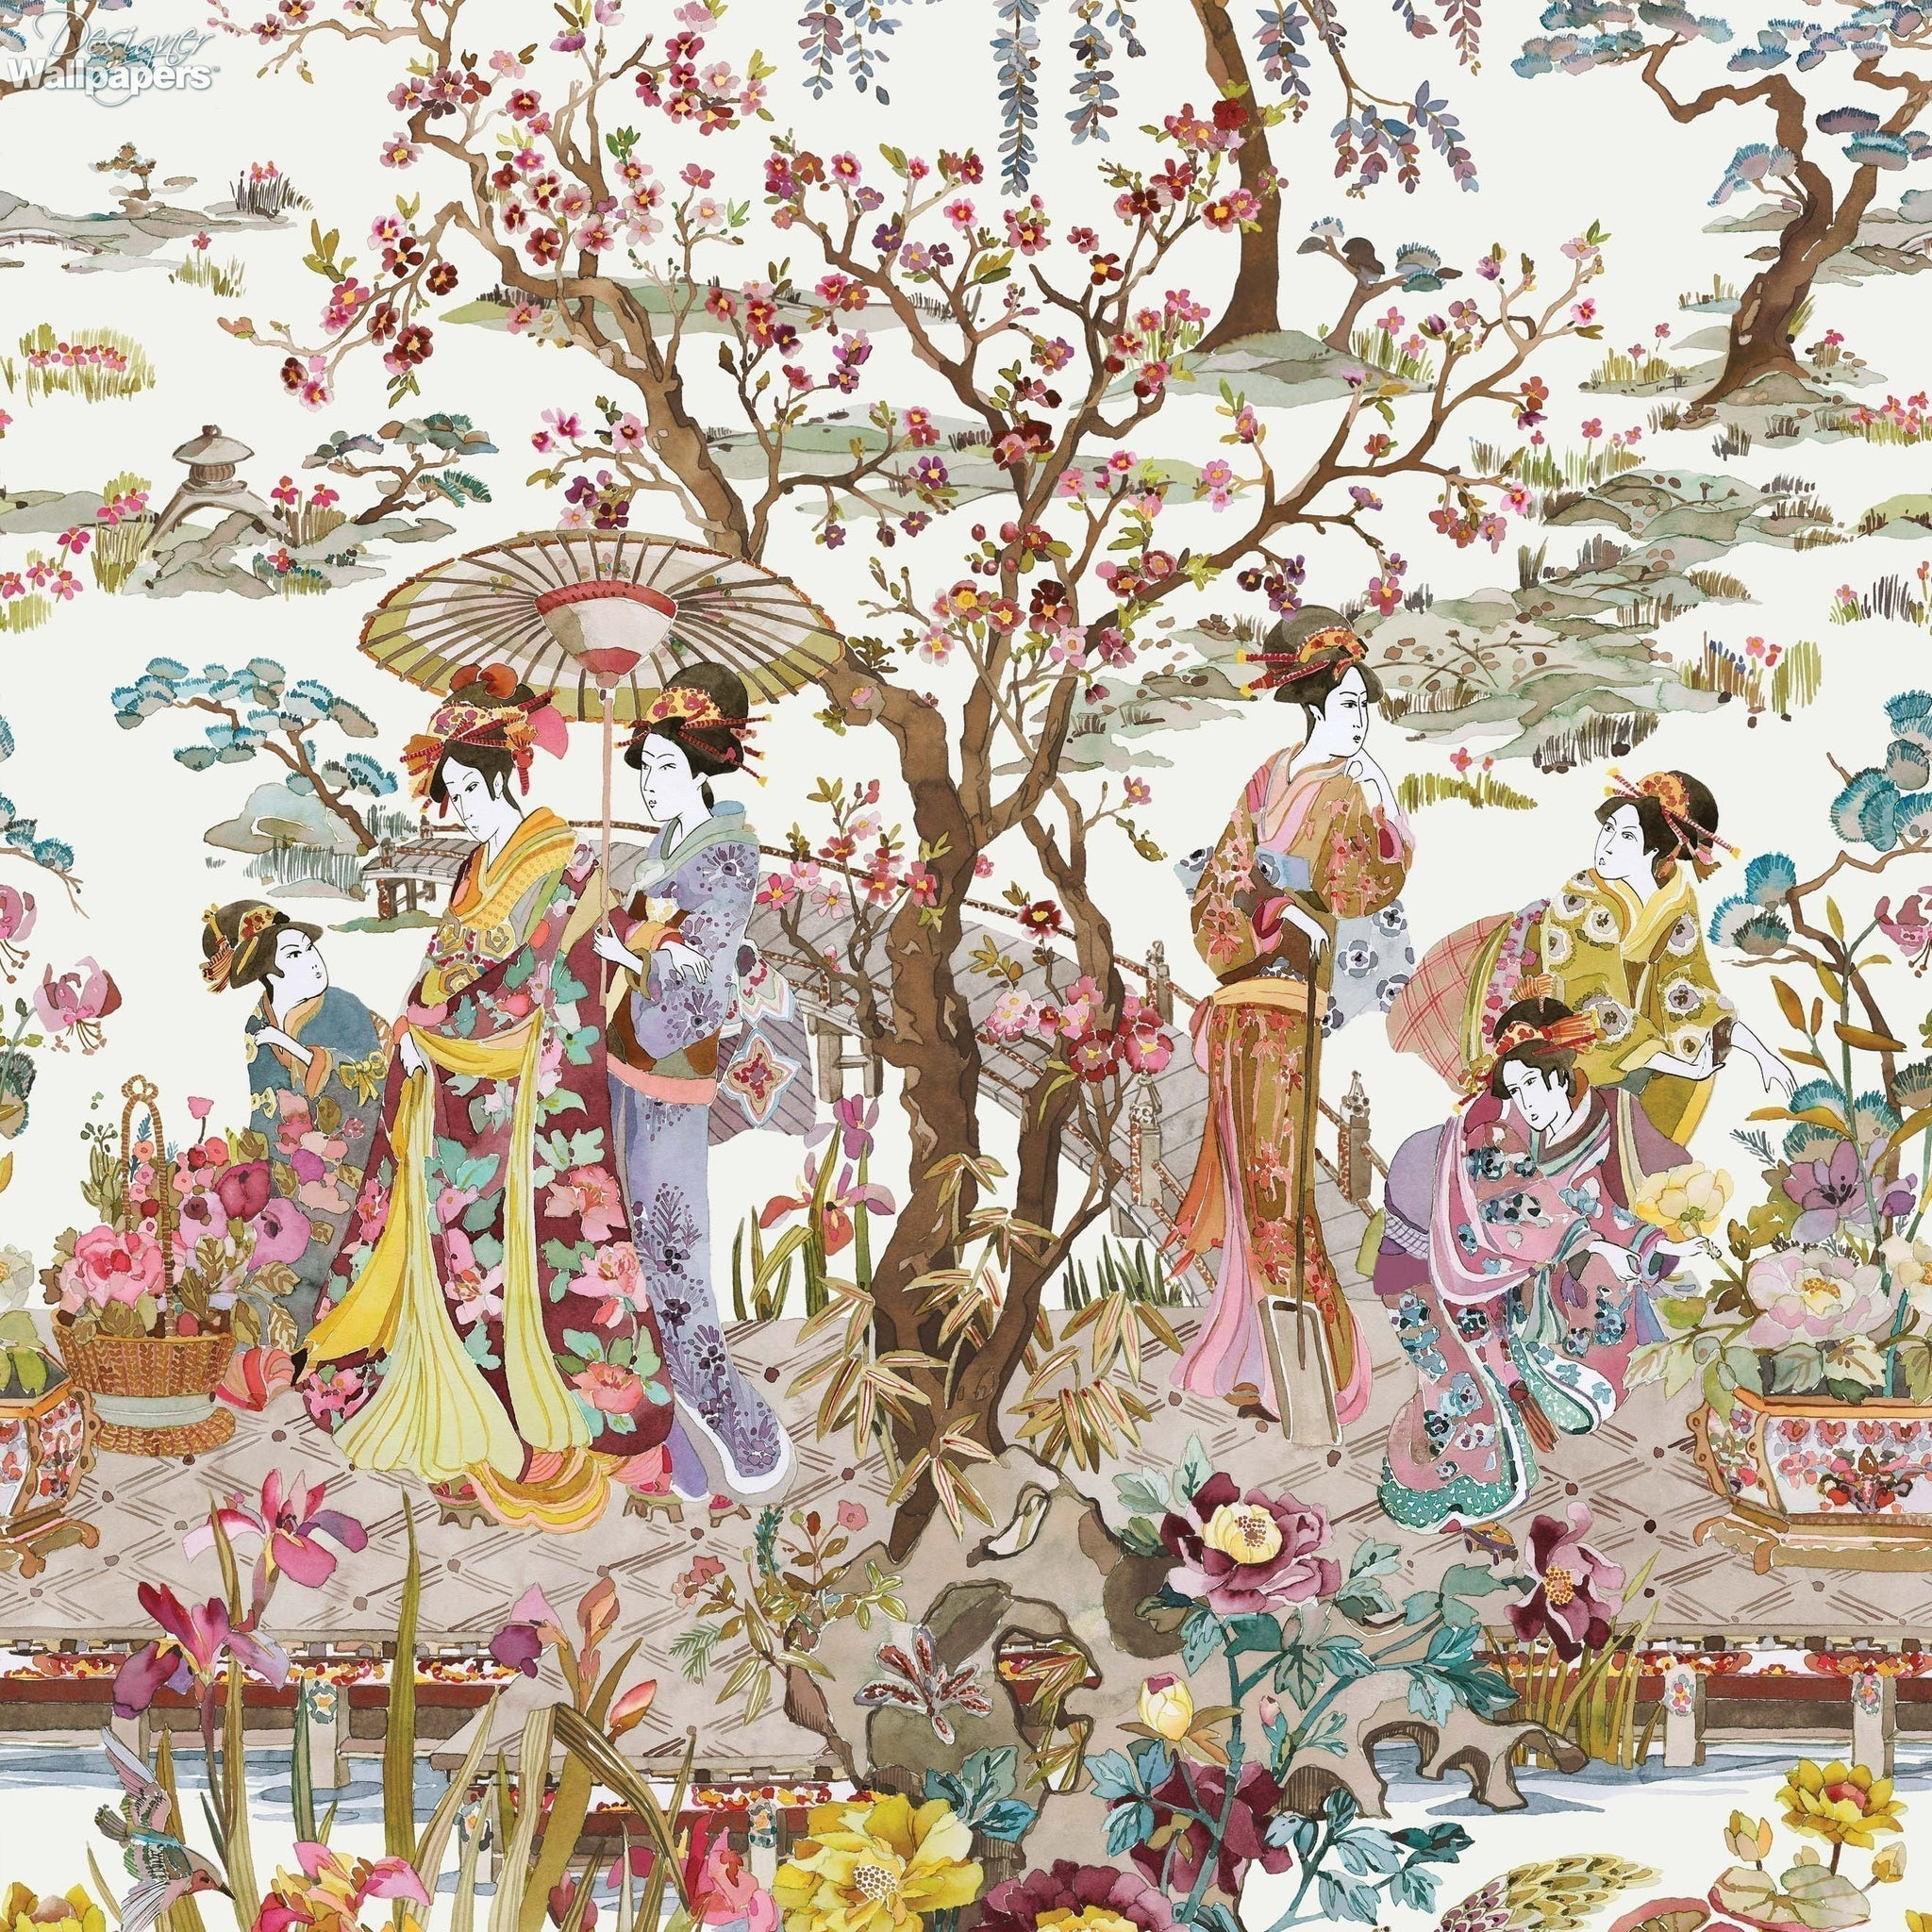 japanese garden wallpaper in ochre from the enchanted gardens collection by osborne little - Japanese Garden Wallpaper